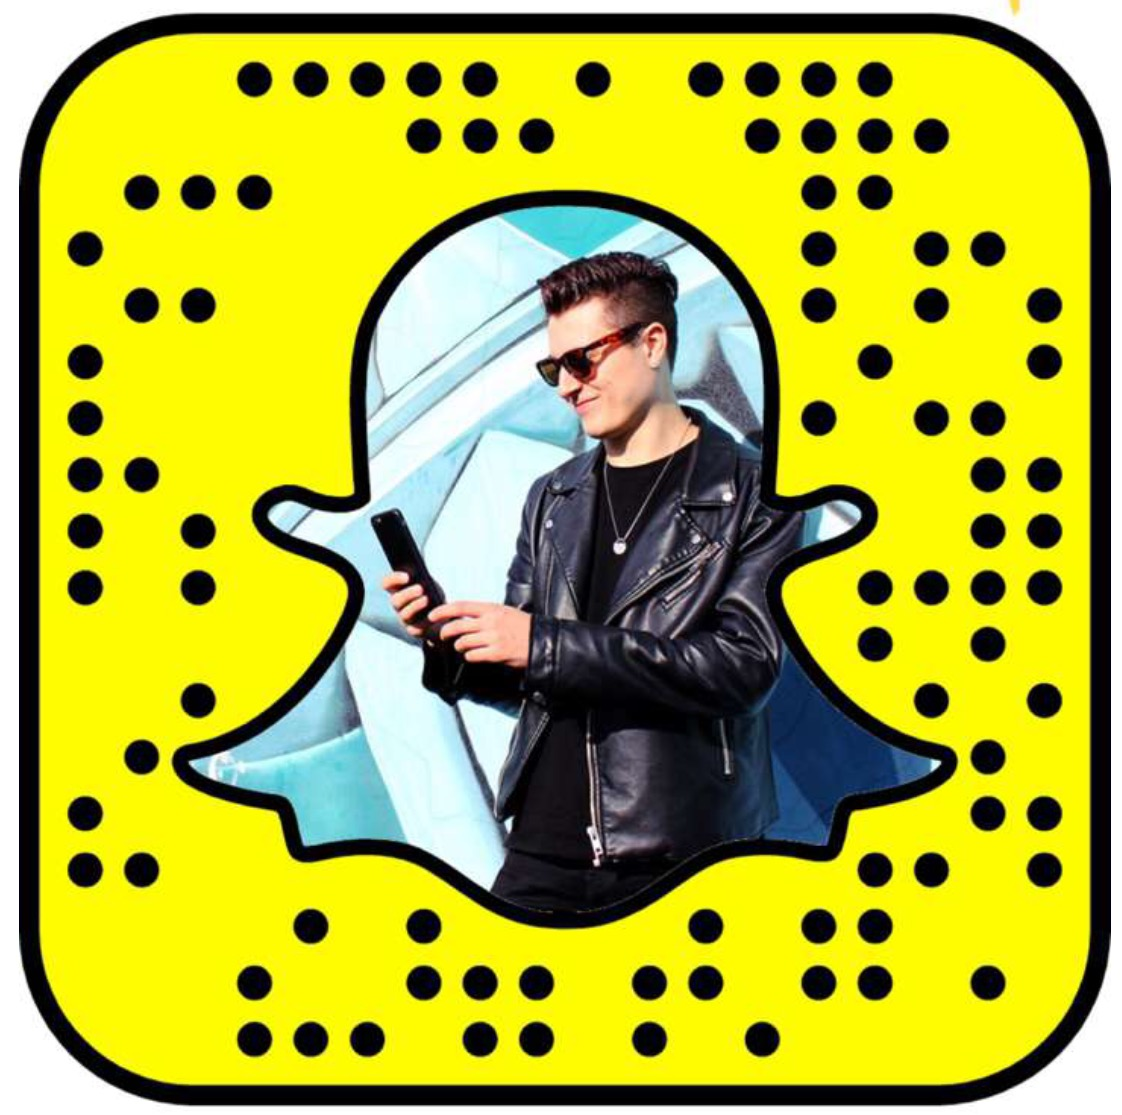 Andy Burgess Snapchat filmmaker and creator